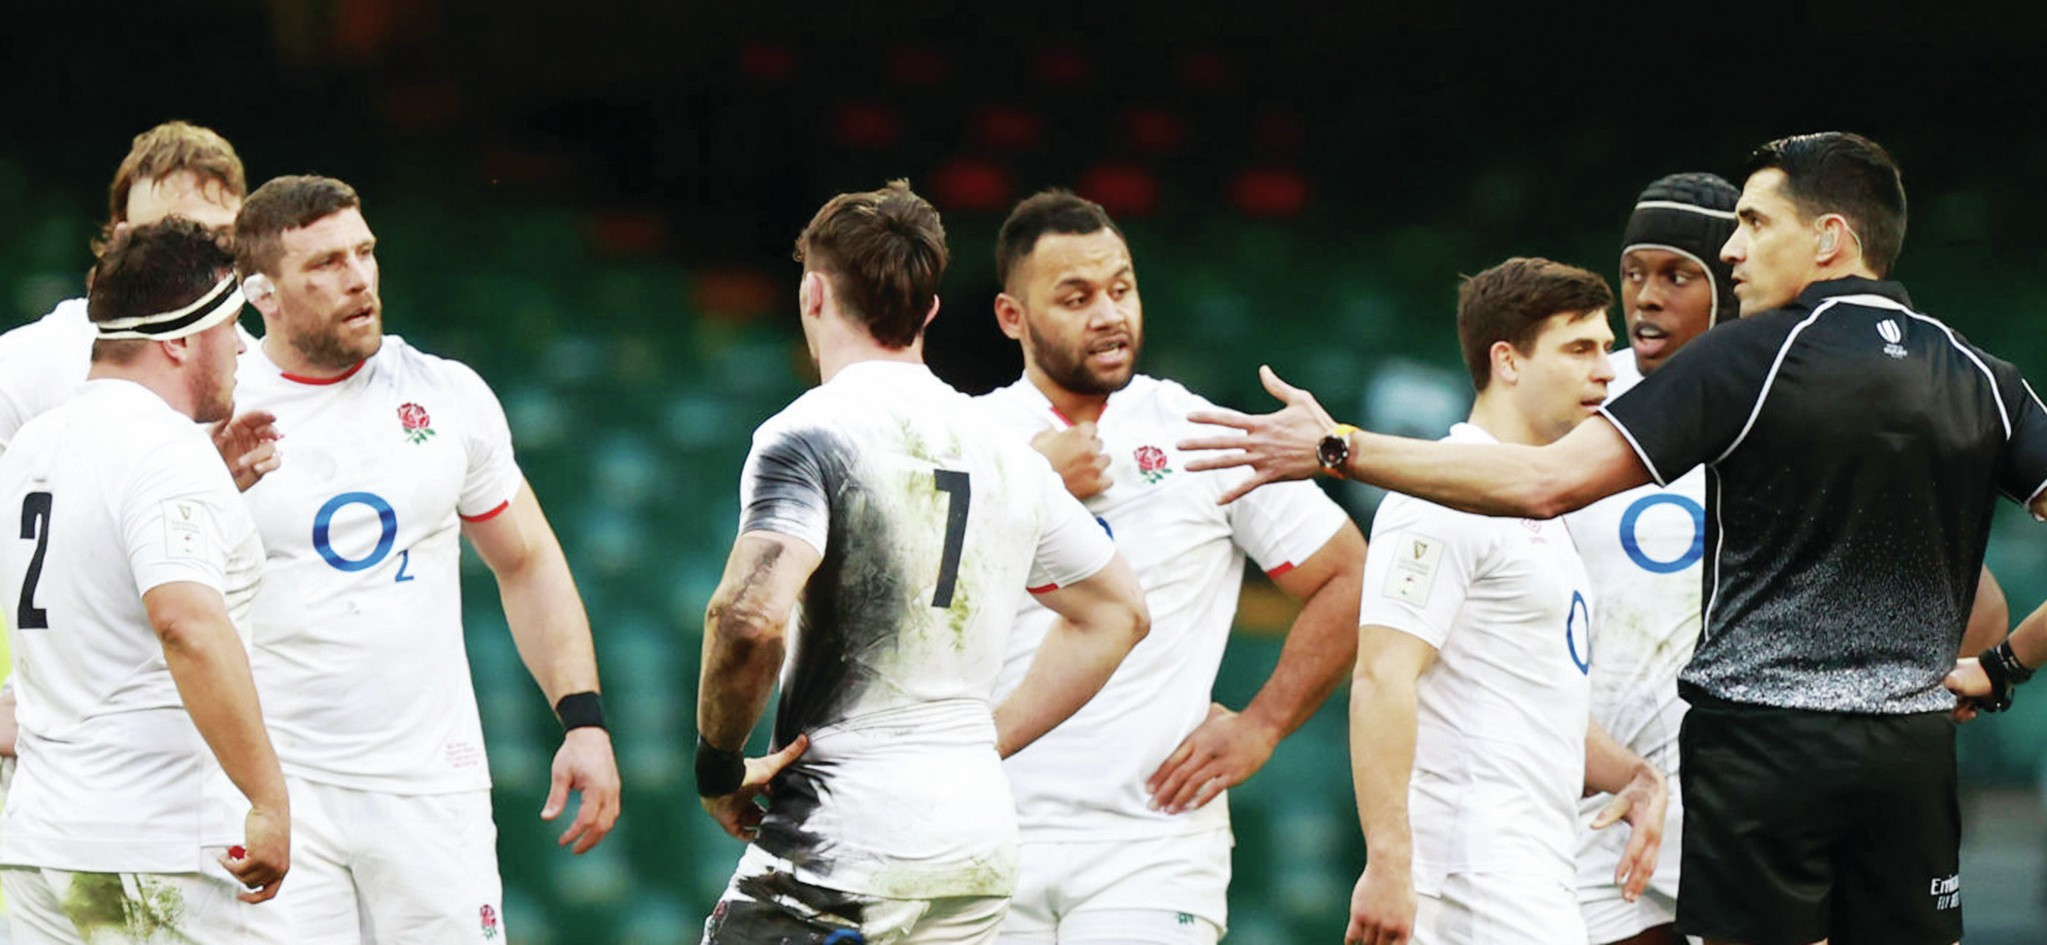 Worst back-to-back callsin history of Six Nations